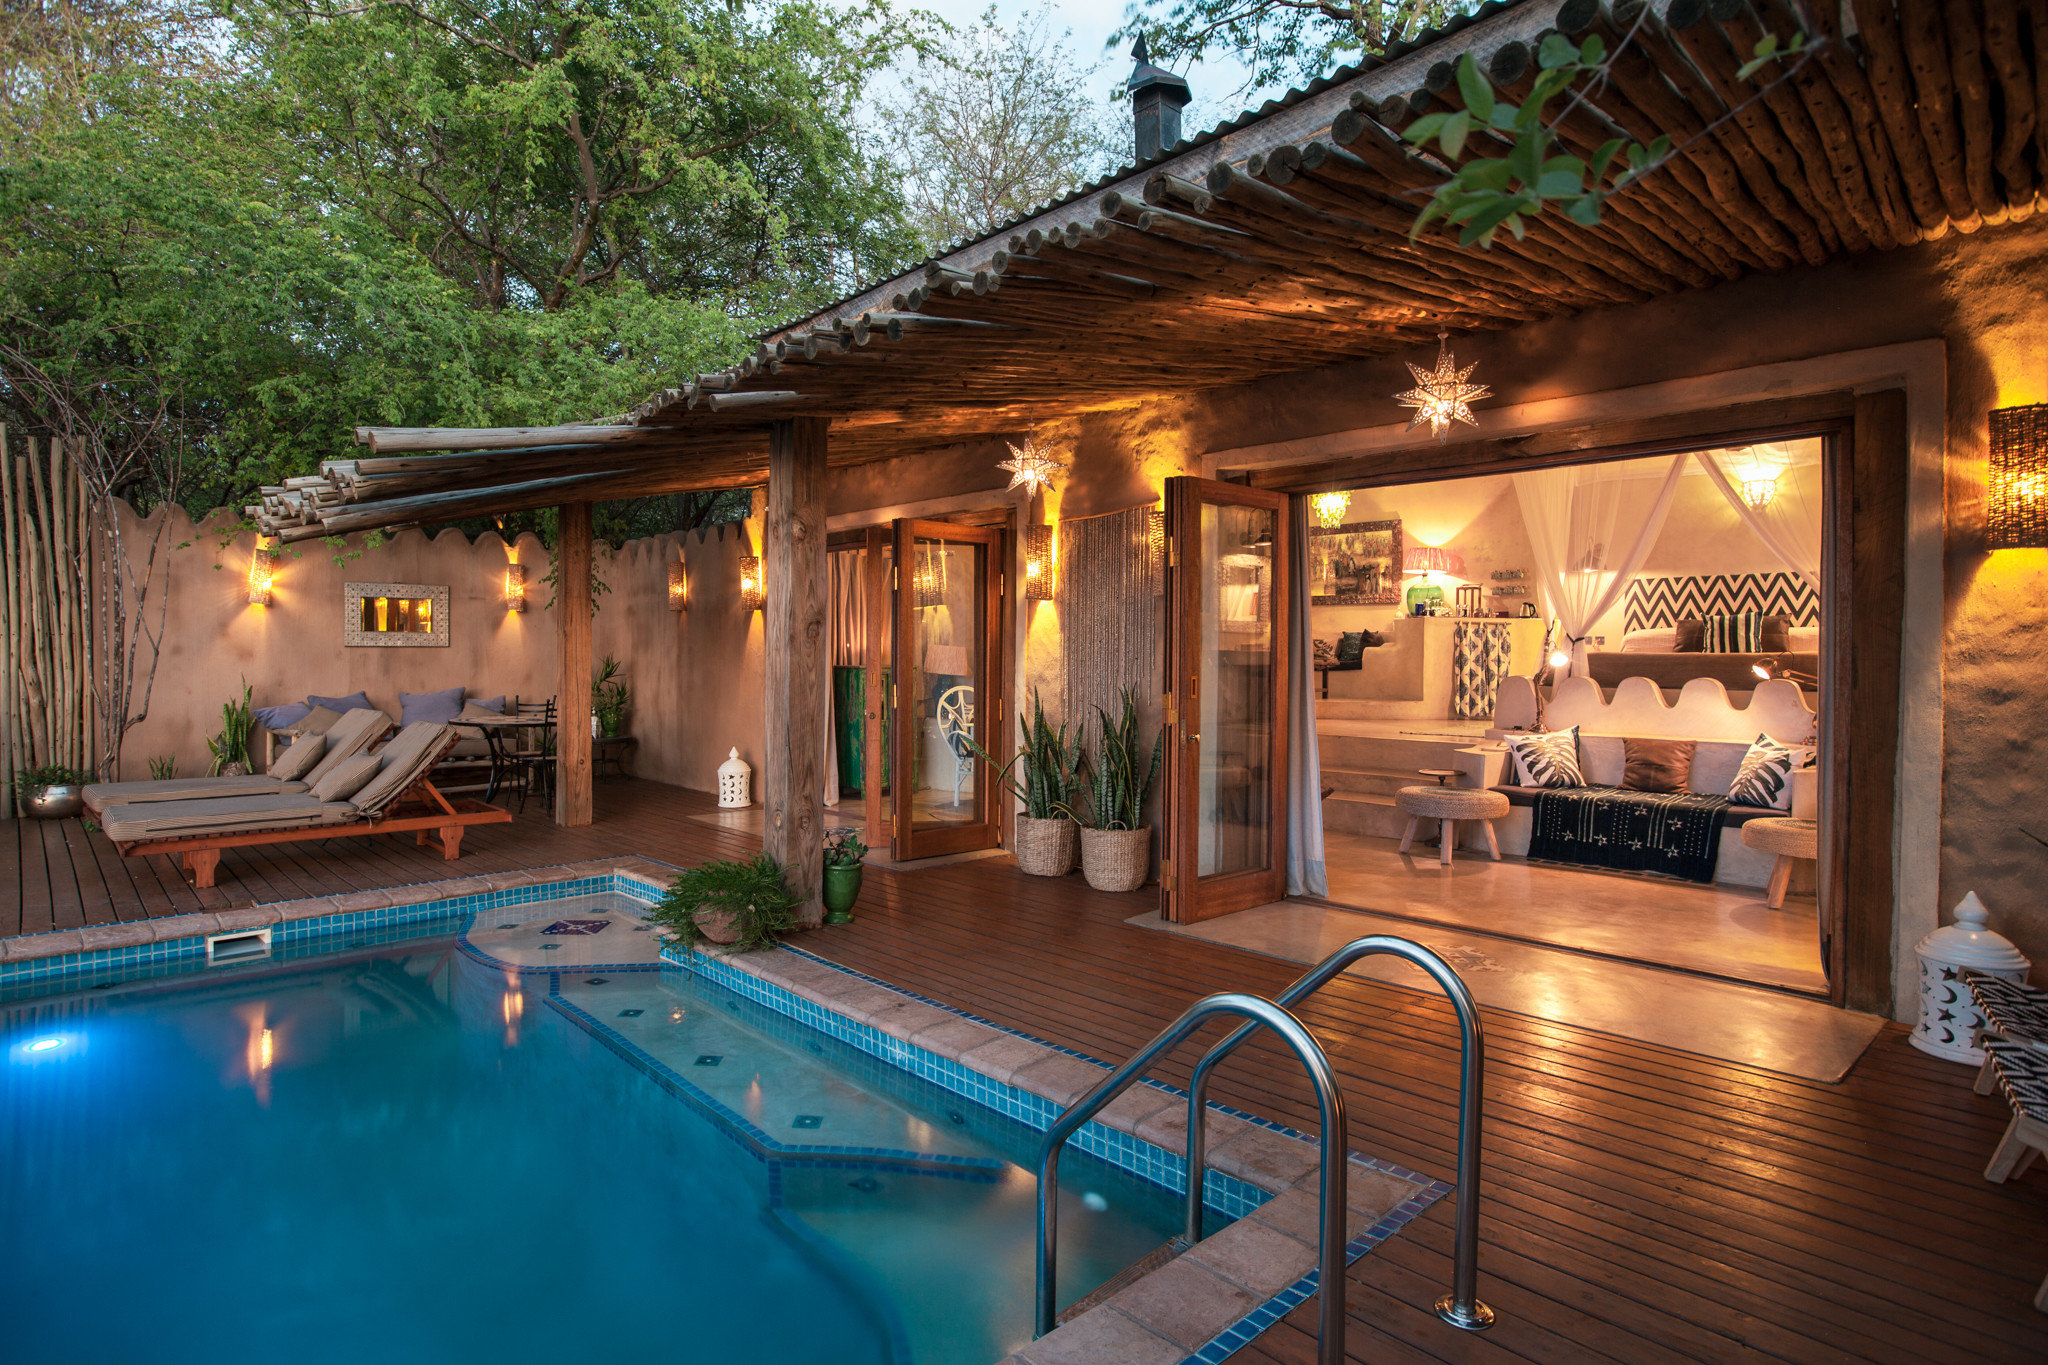 Hotels Safaris property swimming pool building home Resort leisure Villa backyard outdoor structure Patio house cottage amenity resort town